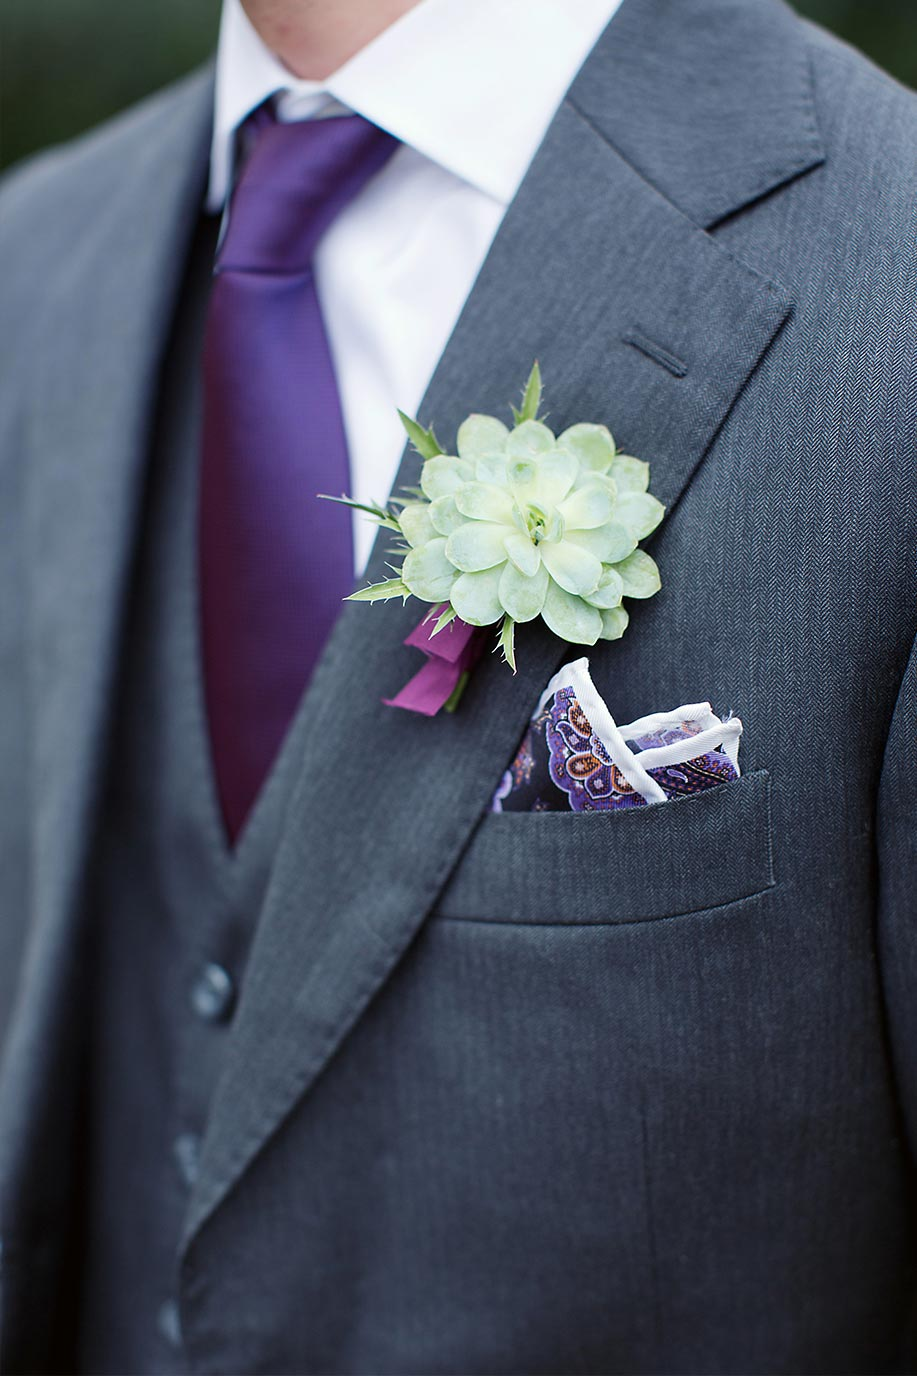 Groom's succulent boutonniere with purple tie and gray suit